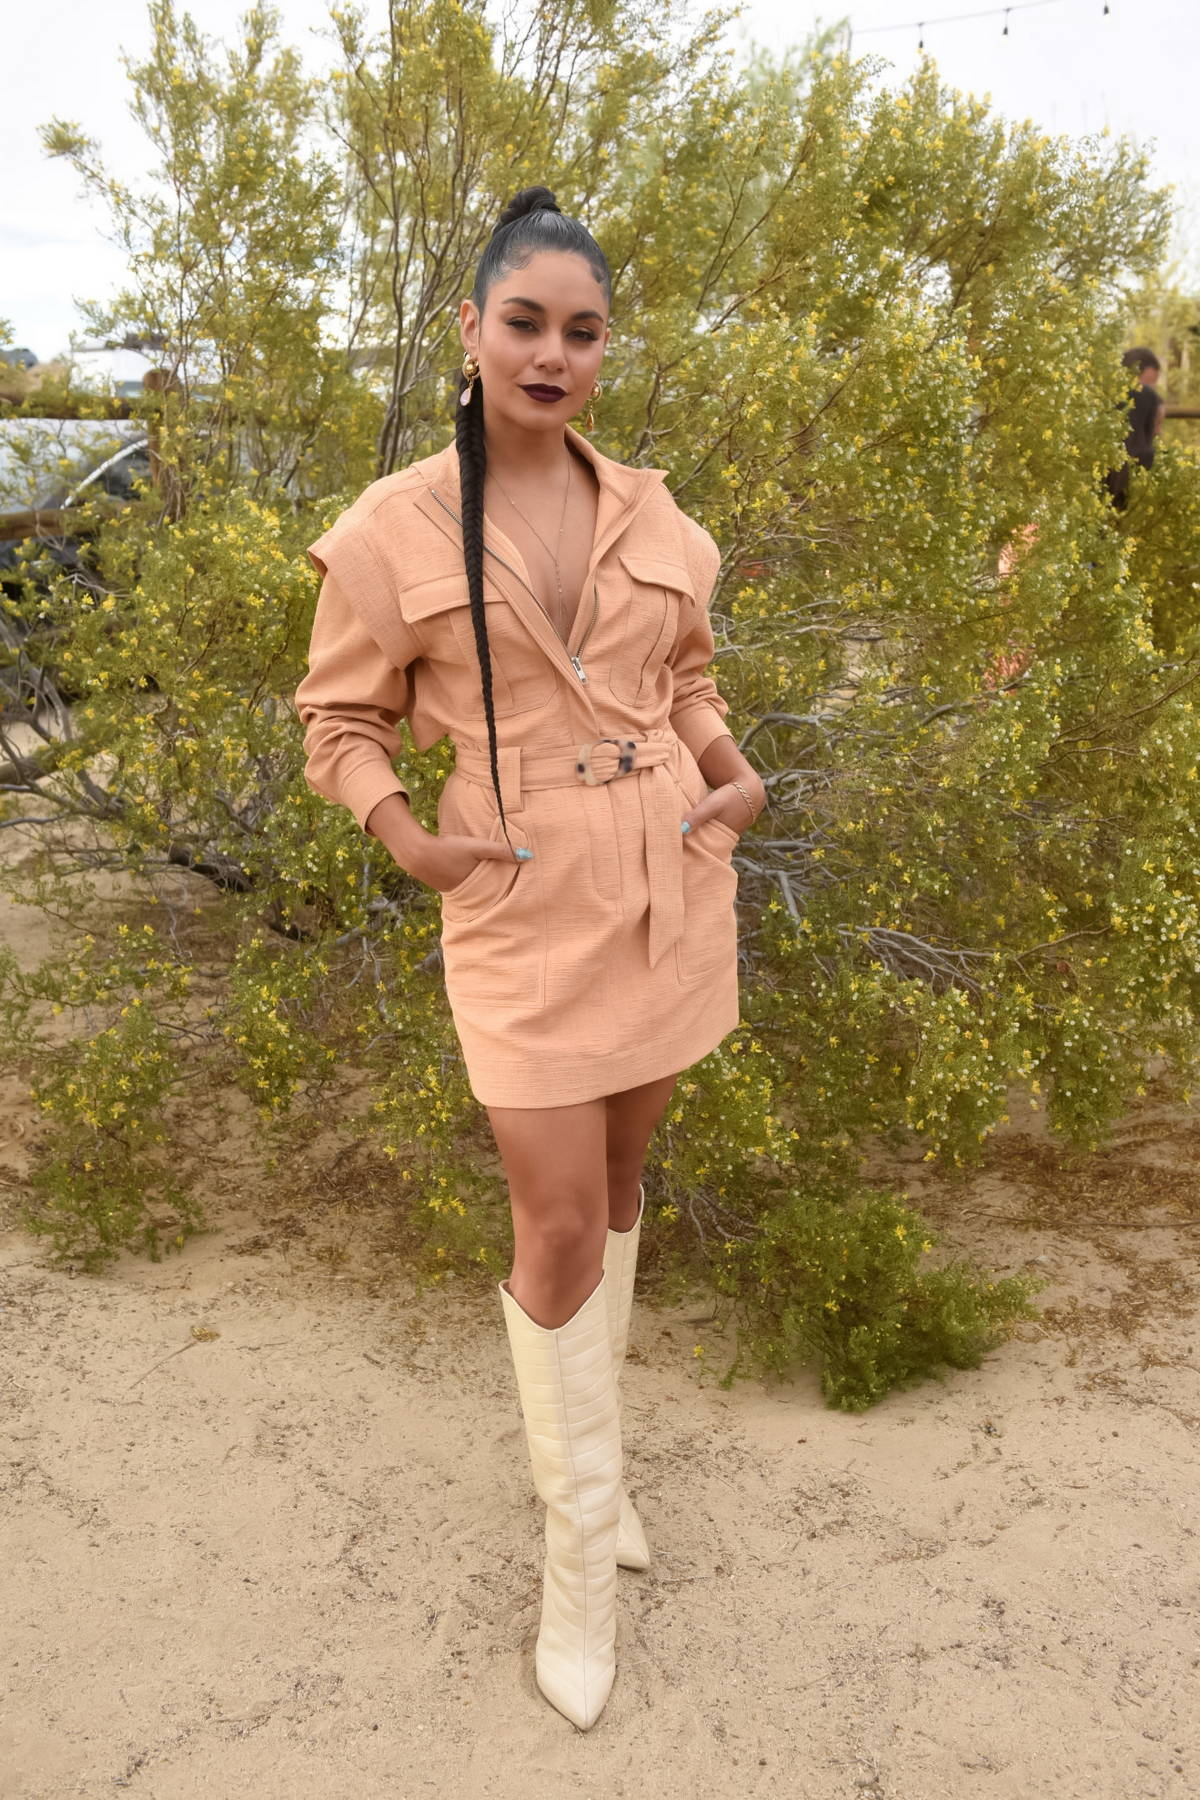 Vanessa Hudgens attends Caliwater Escape, Day 2 at the Mojave Moon Ranch in Joshua Tree, California